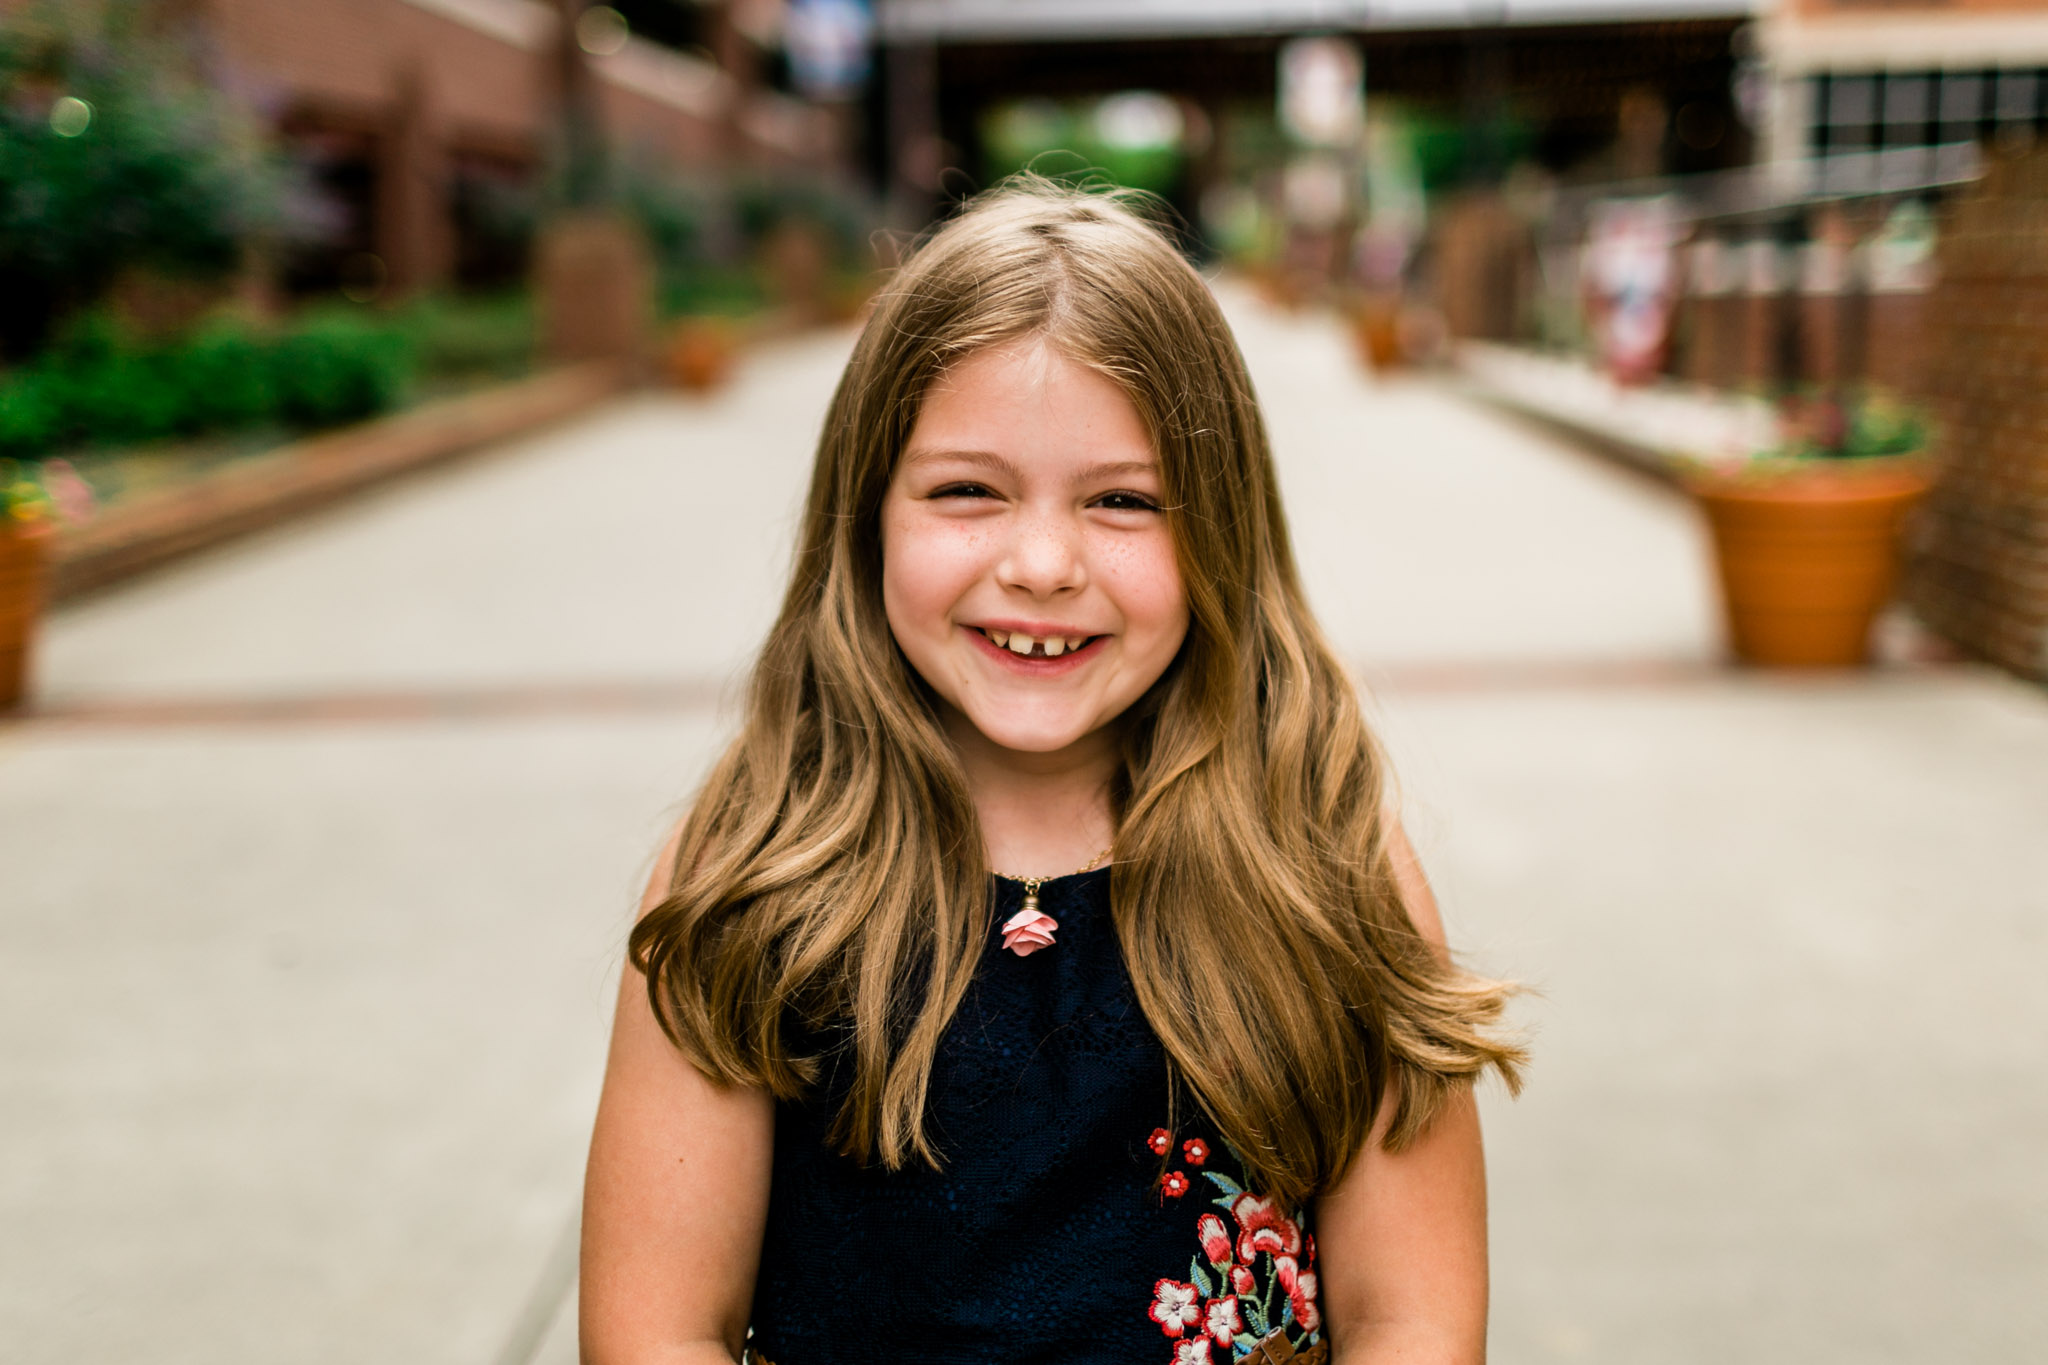 Durham Family Photographer | By G. Lin Photography | Portrait of young girl smiling at camera